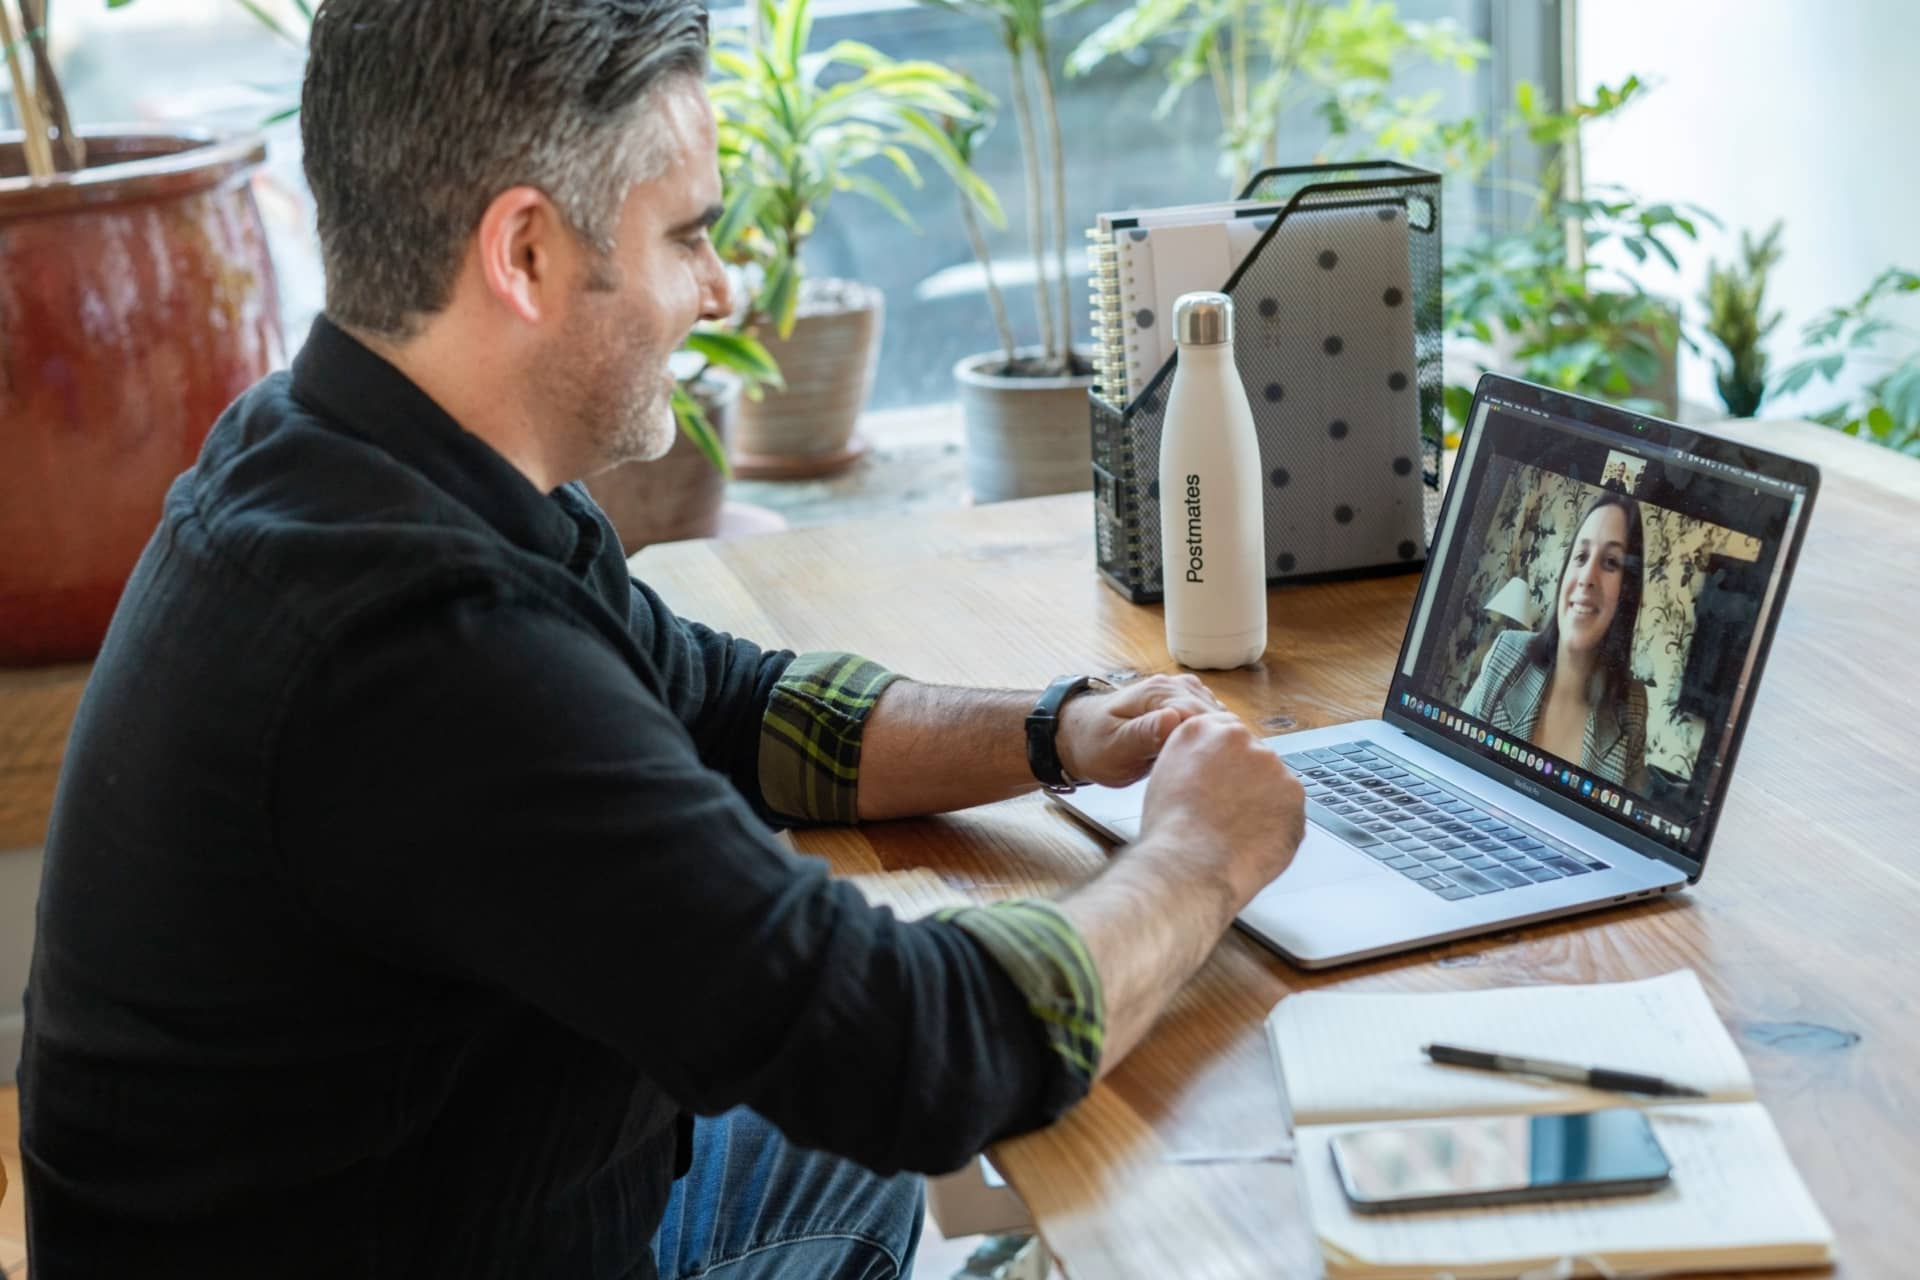 man on zoom call on laptop